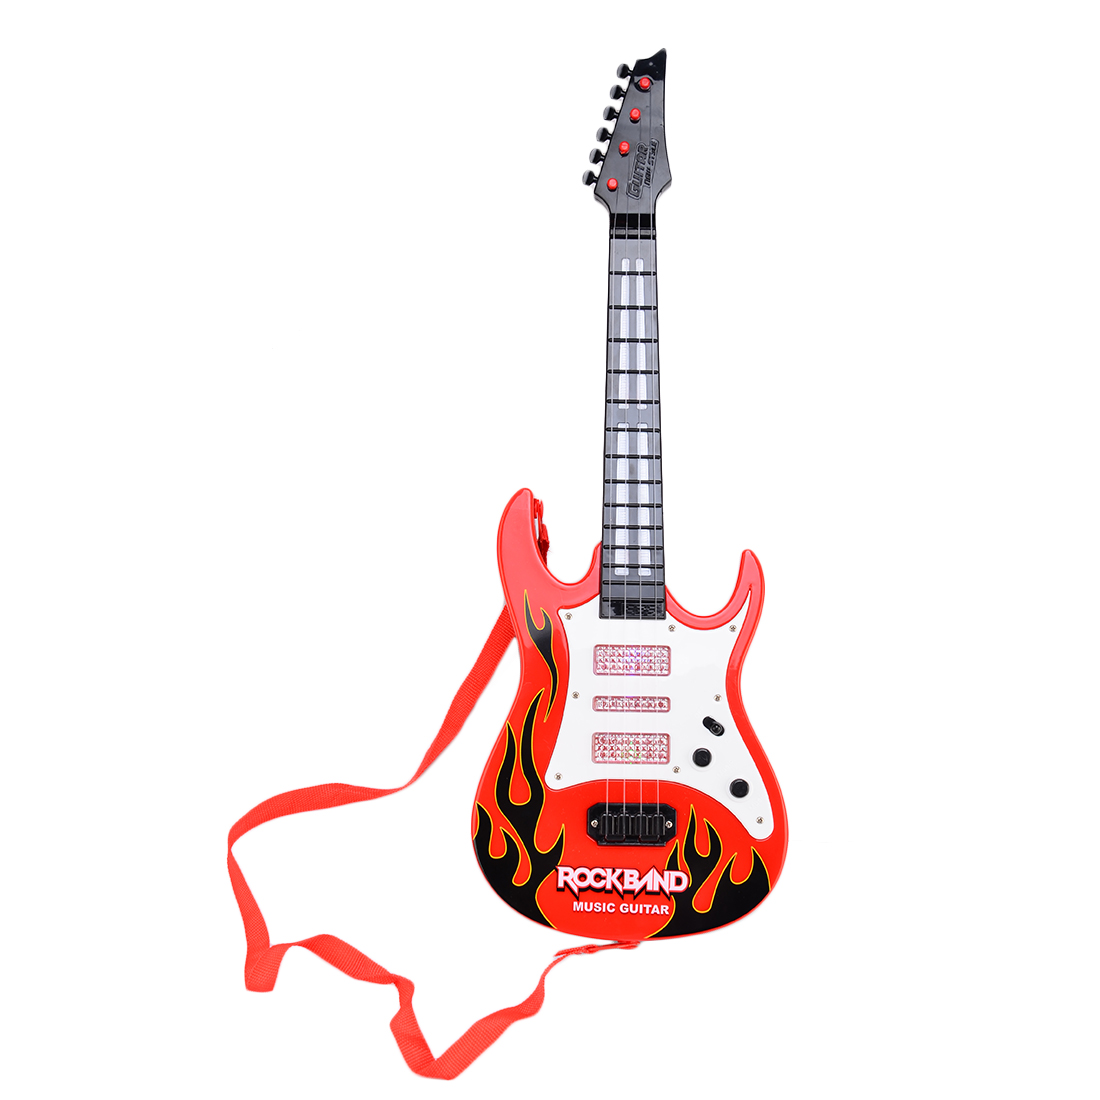 High Quality 4 Strings Music Electric Guitar Kids Musical Instruments Educational Toys For Children As New Year GiftsHigh Quality 4 Strings Music Electric Guitar Kids Musical Instruments Educational Toys For Children As New Year Gifts